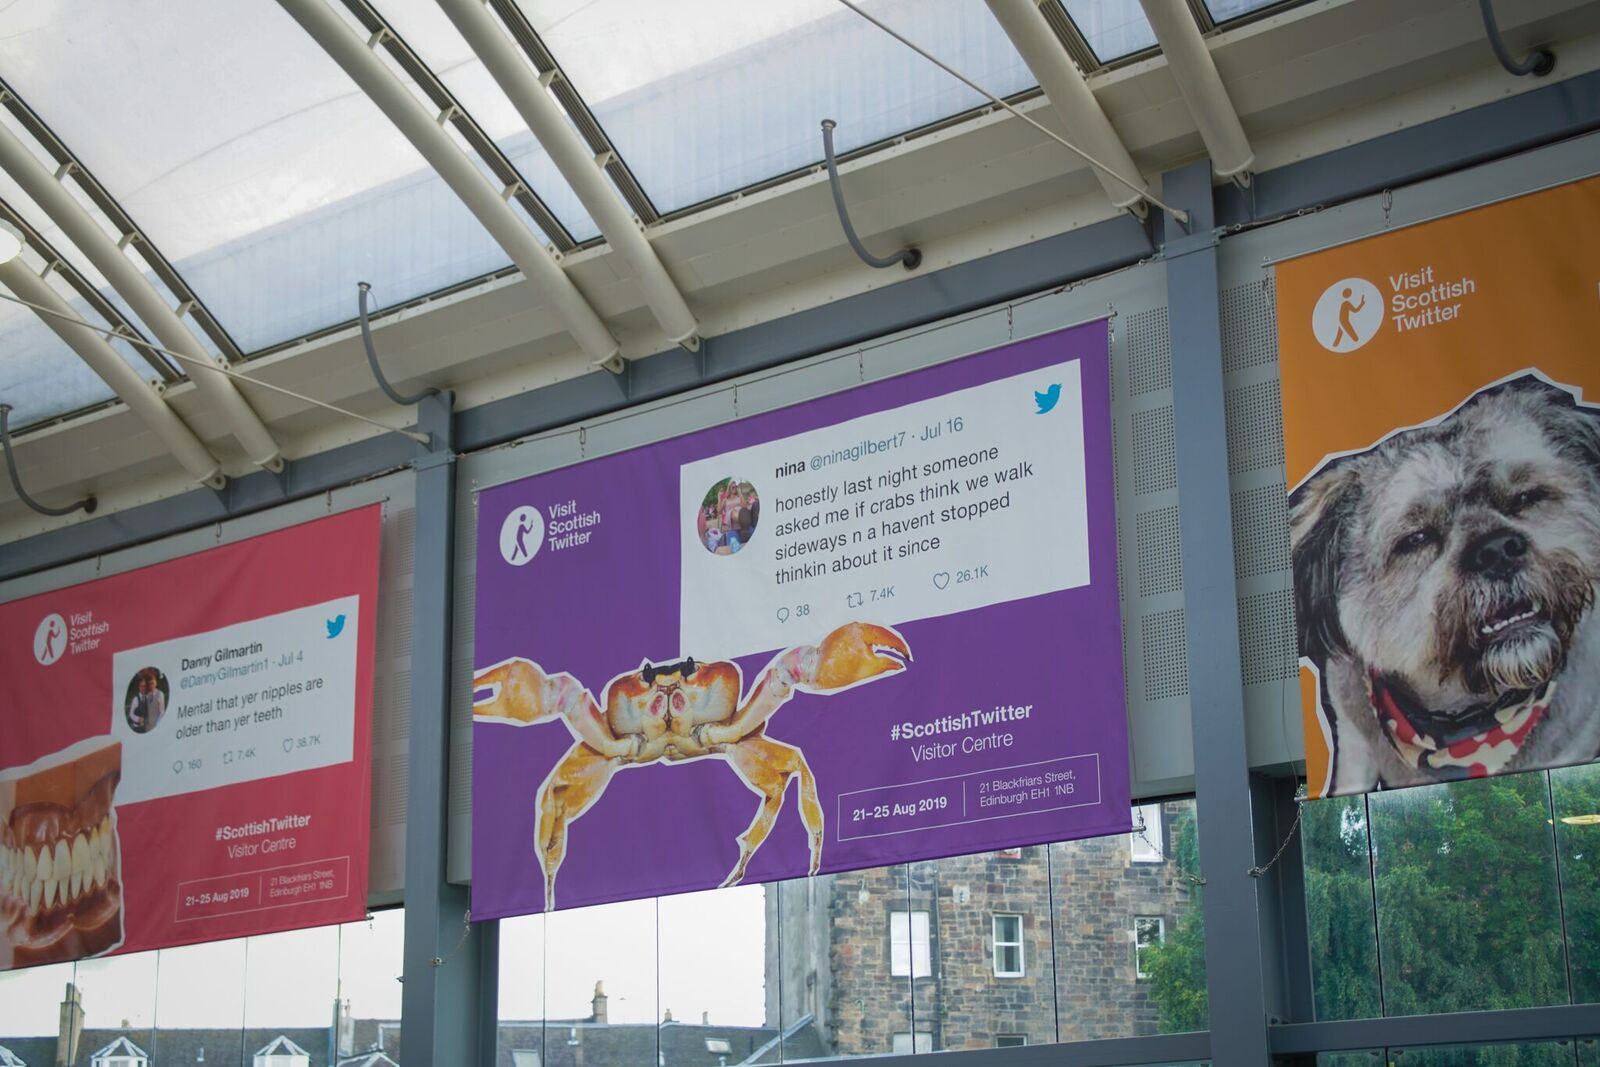 First-ever Scottish Twitter Visitor Centre to open in Edinburgh